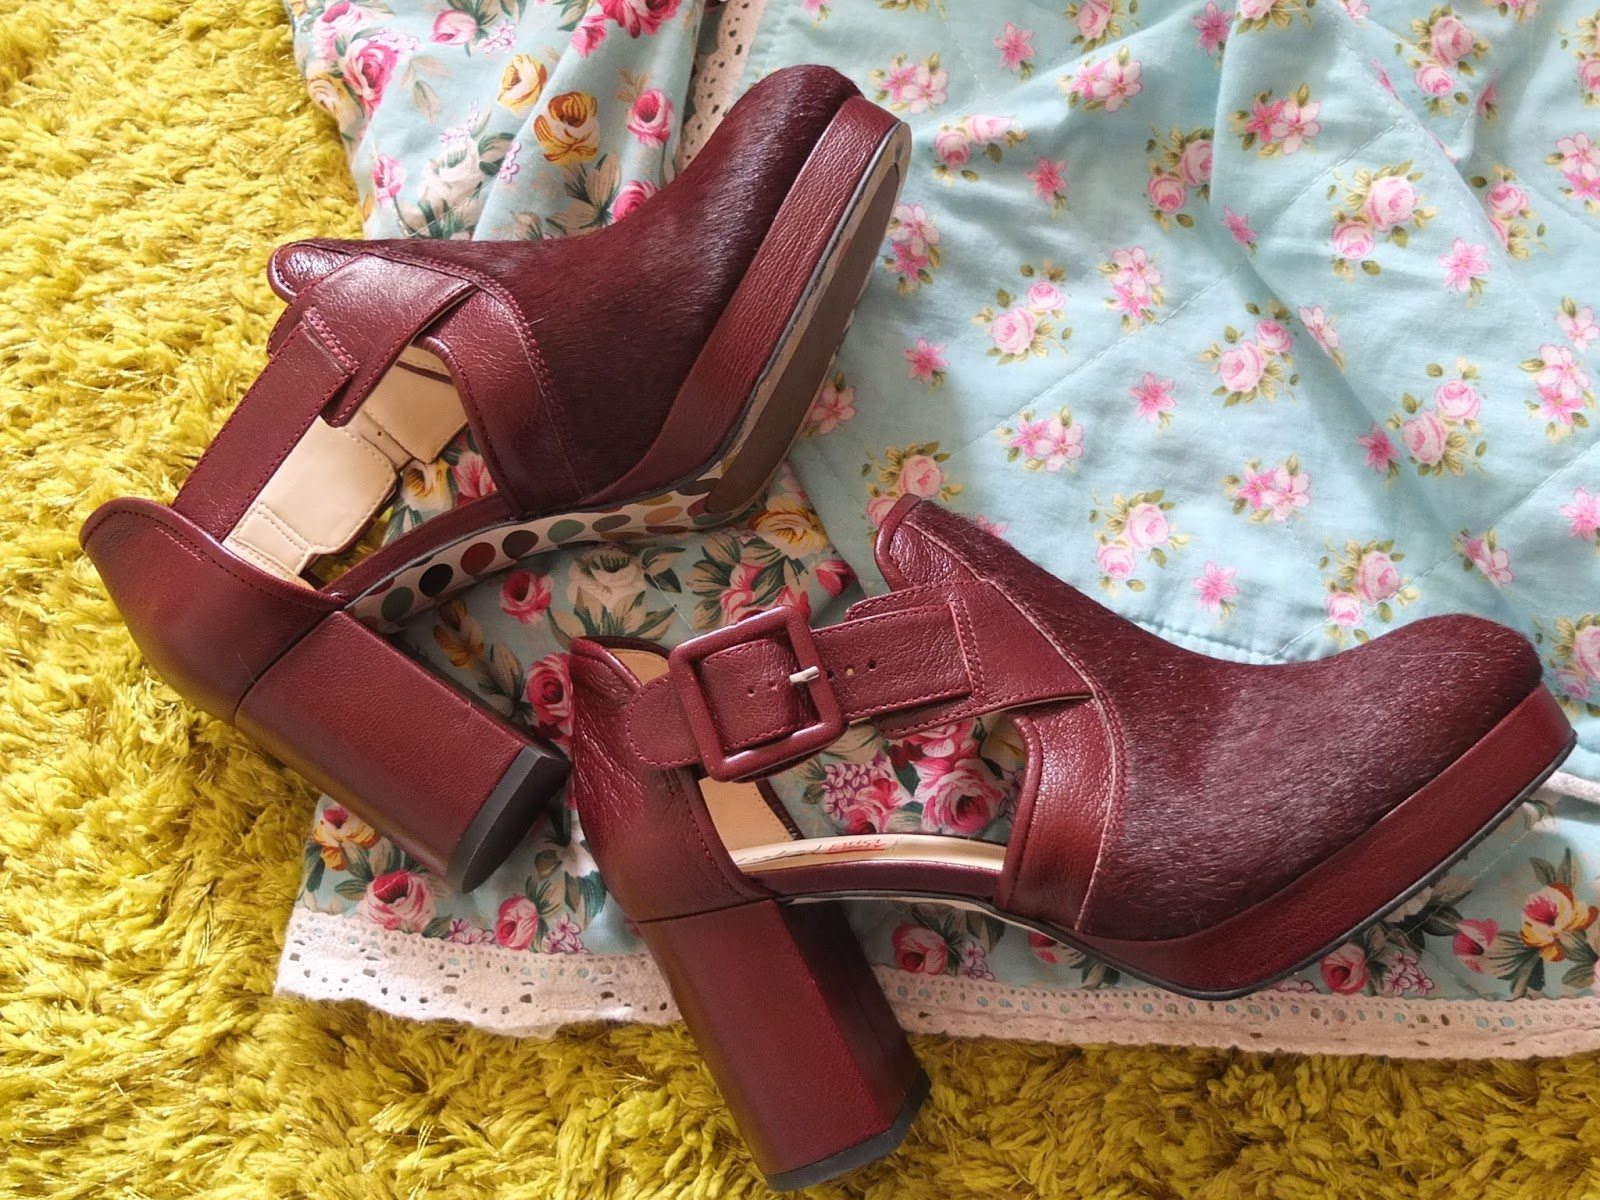 Orla Kiely Dilly Shoes from the AW14 collection at Clarks on UK fashion blog, Hello Terri Lowe.